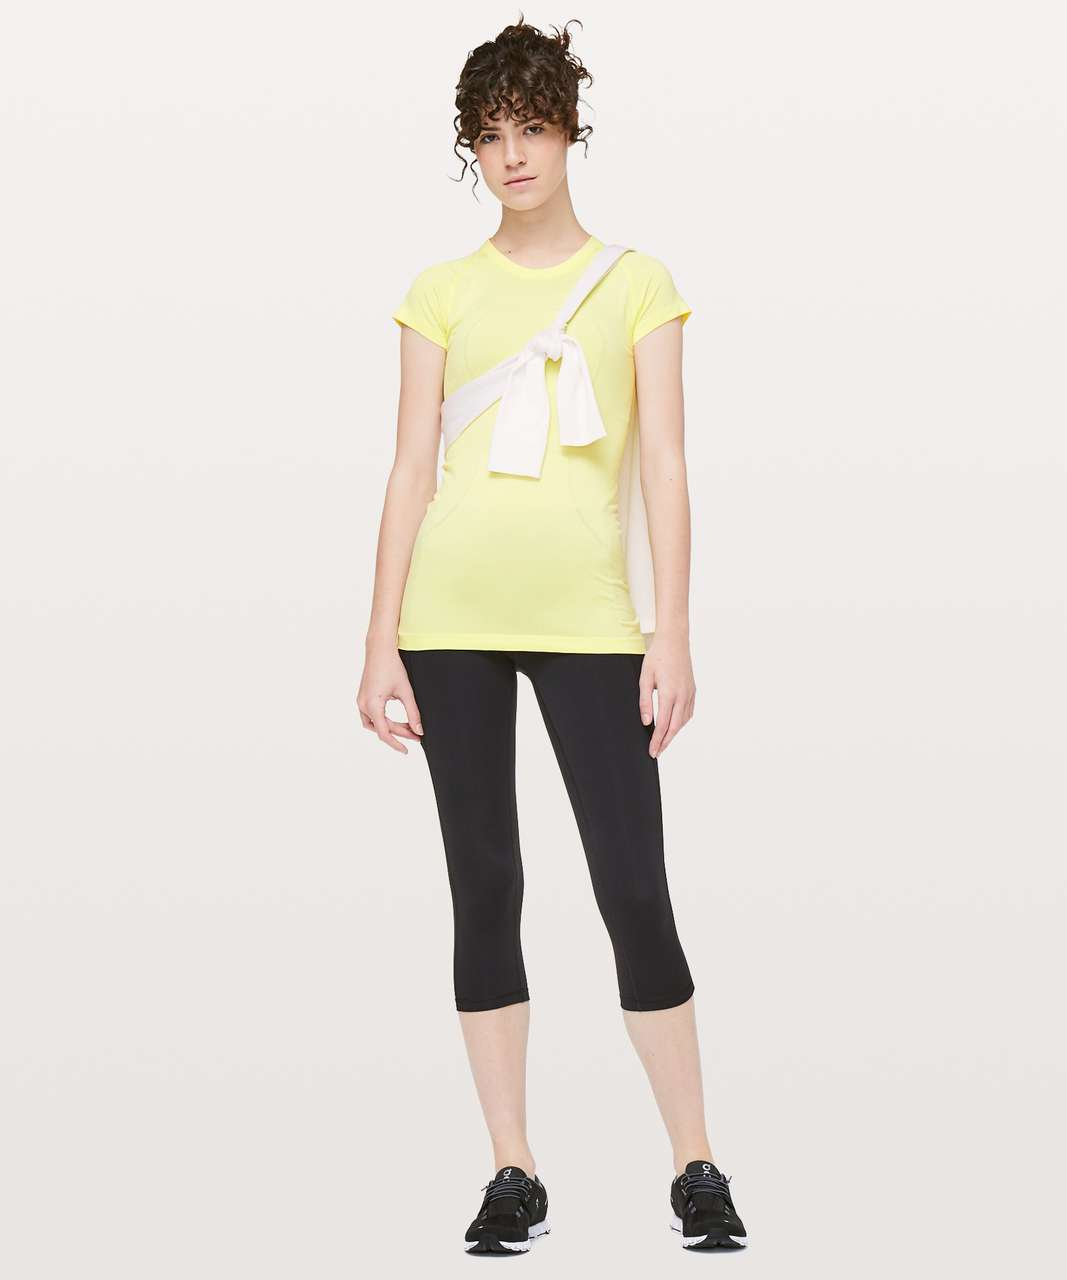 Lululemon Swiftly Tech Short Sleeve Crew - Lemon Ice / Lemon Ice